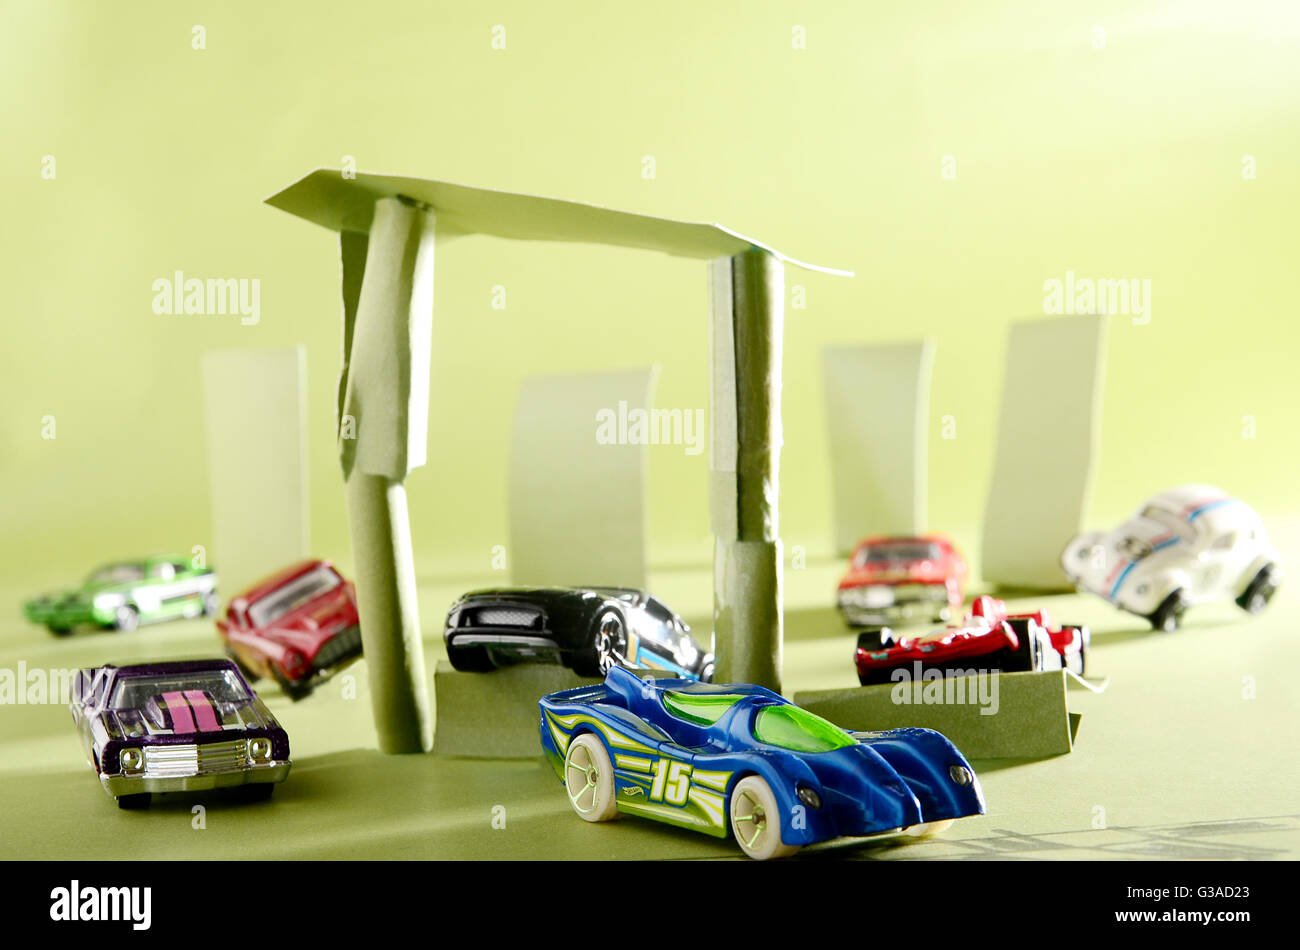 Hot wheels, die cast, group of cars, racing, until finish line - Stock Image